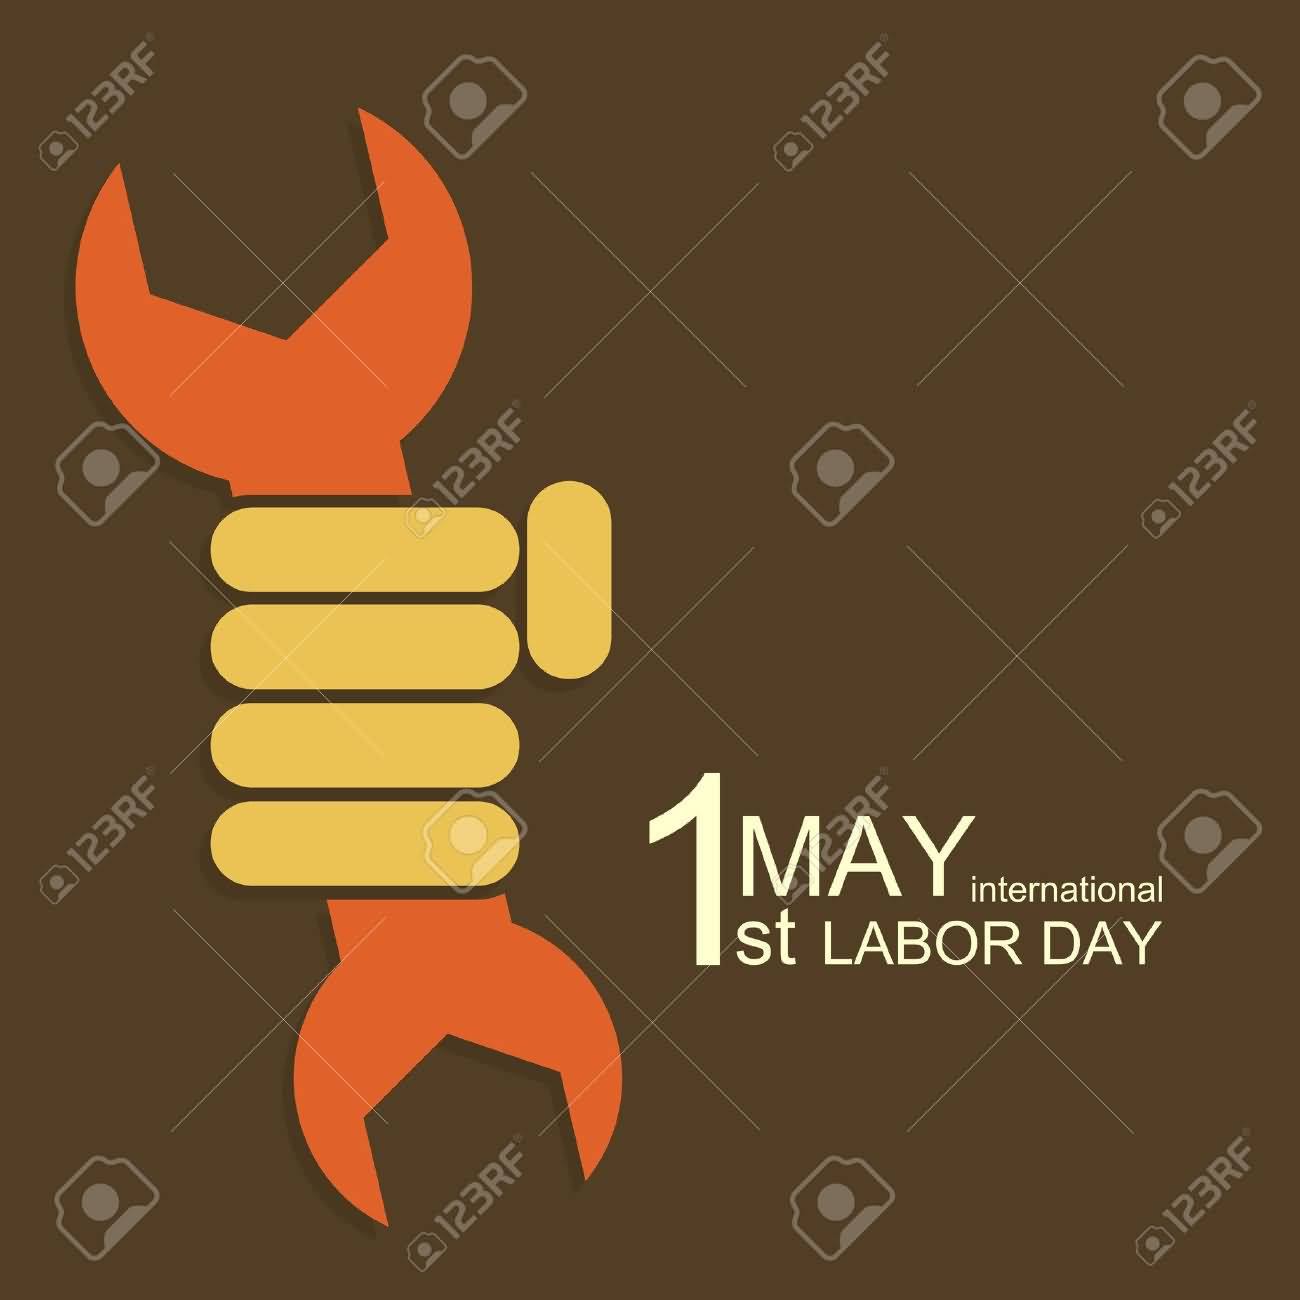 50 best international labour day 2017 wish pictures 1st may international labour day illustration kristyandbryce Image collections